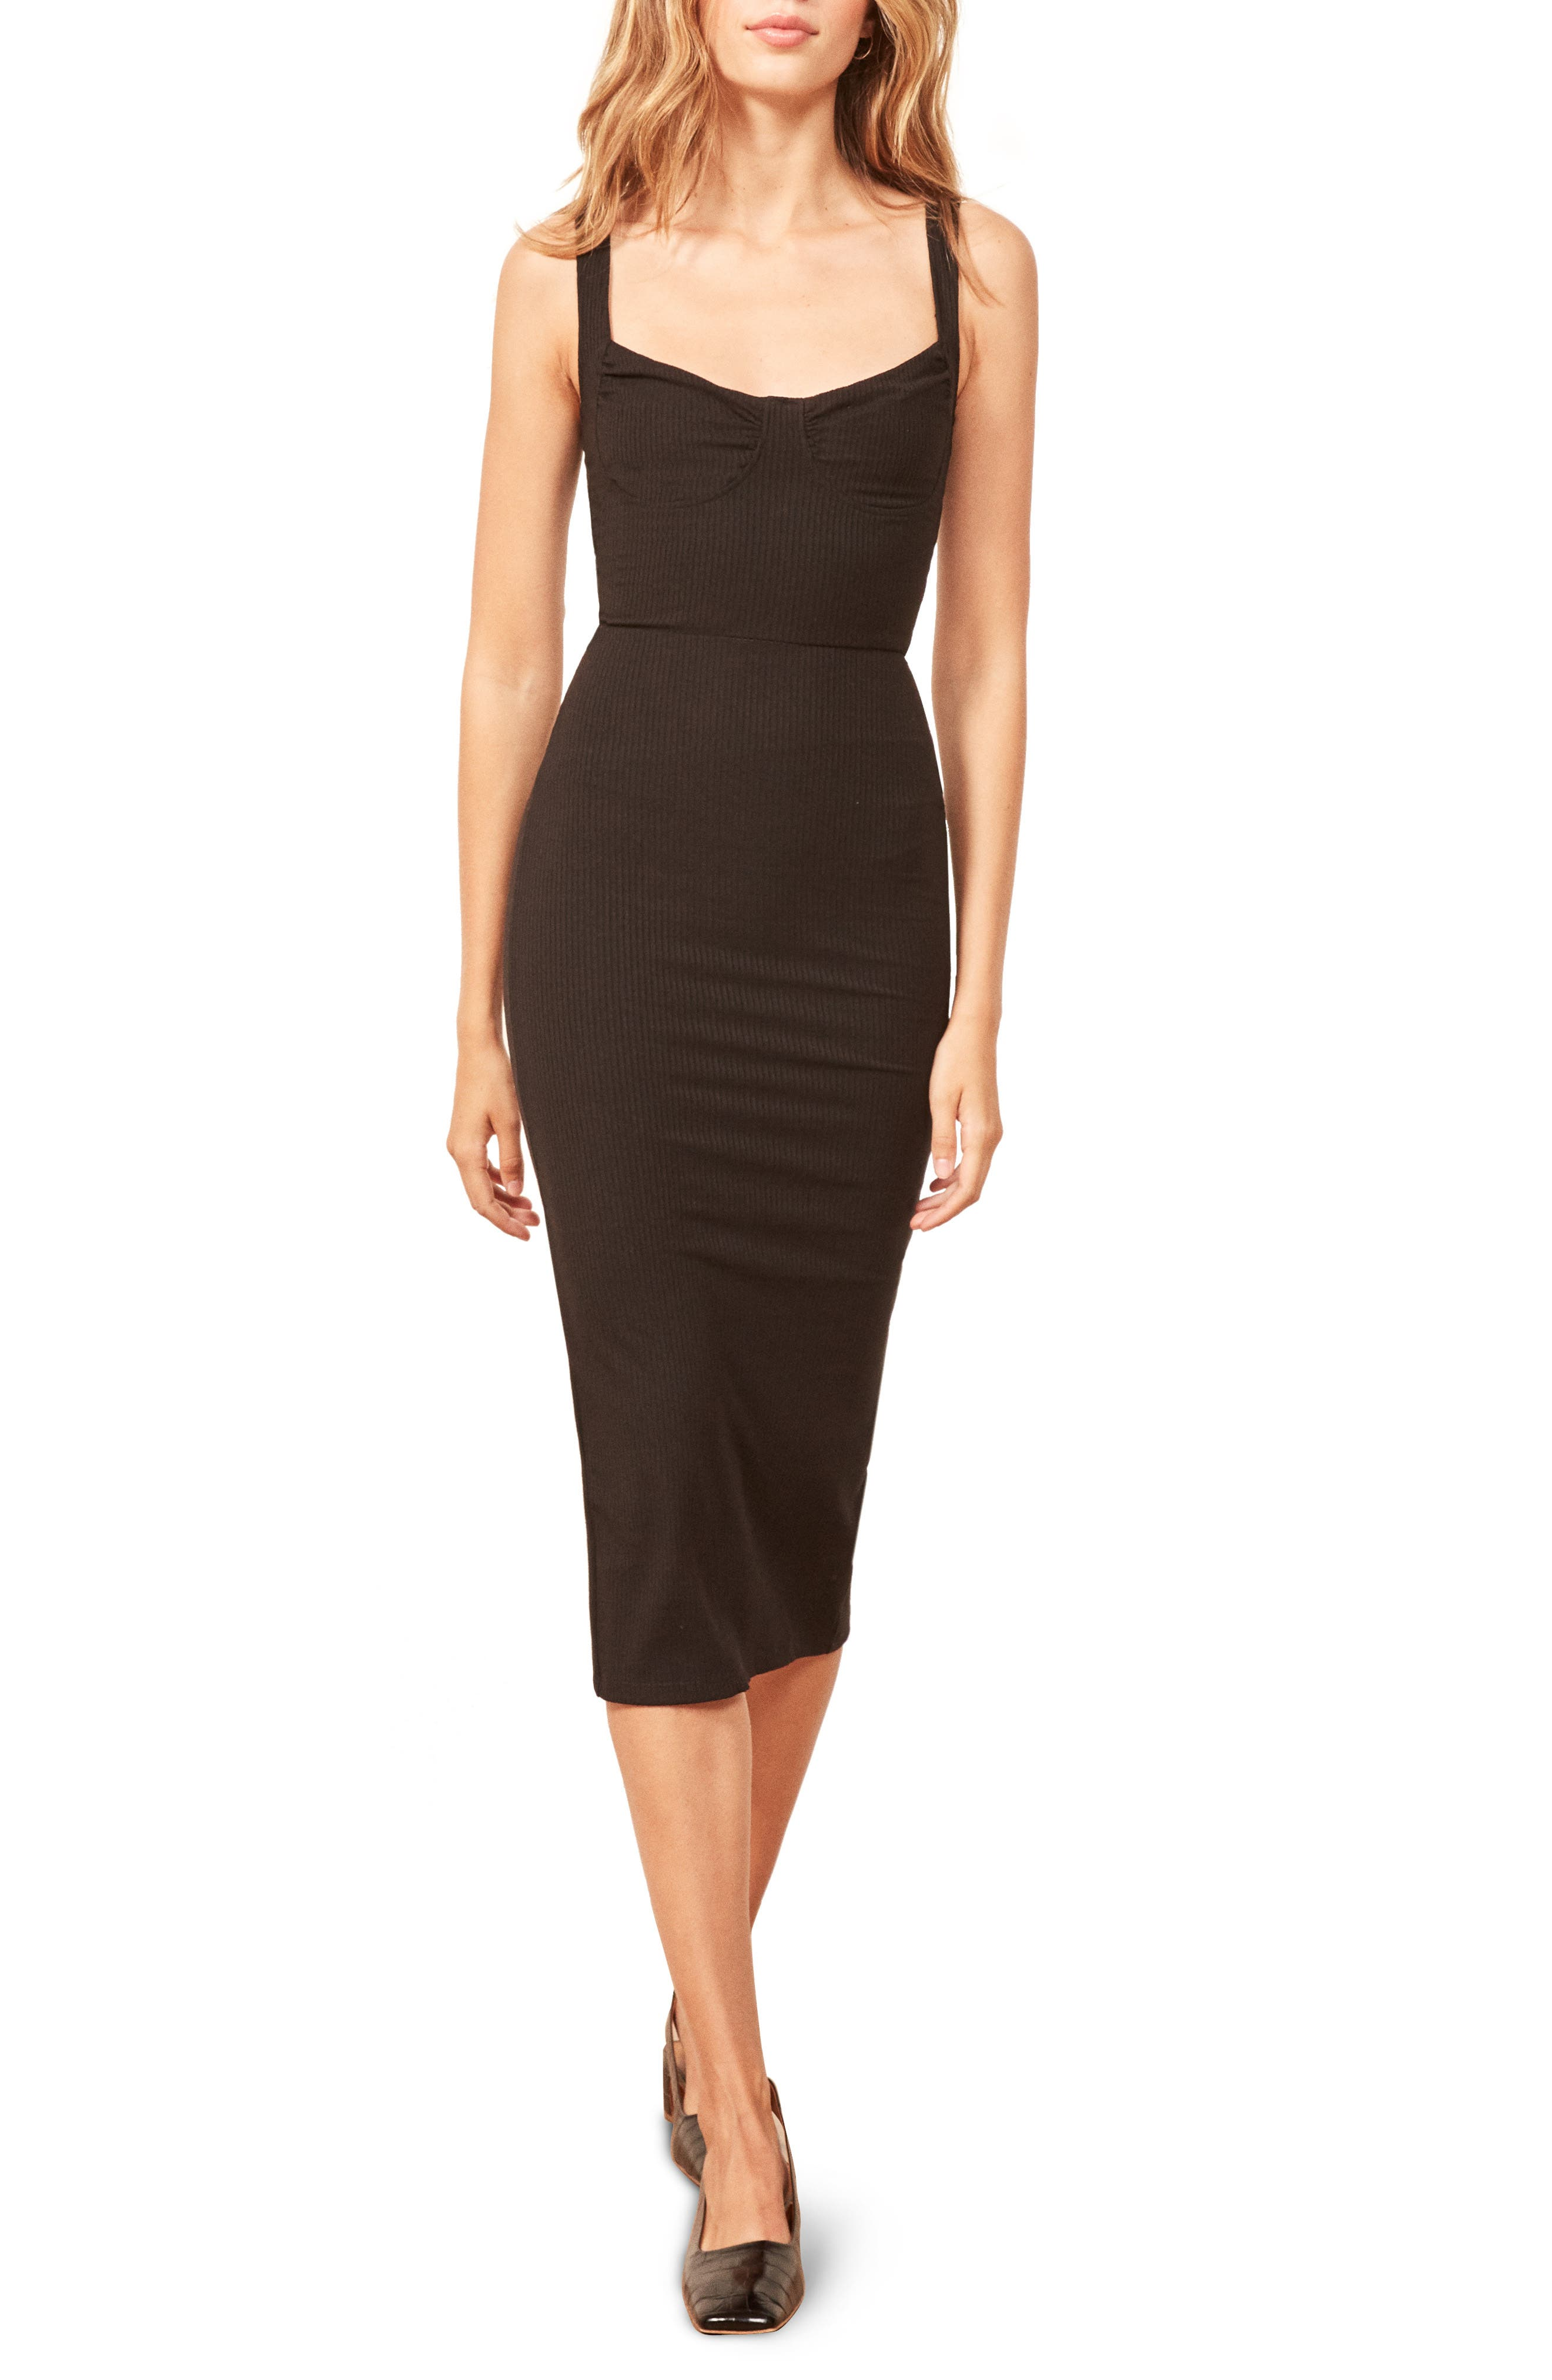 REFORMATION Adrian Sweetheart Neck Body-Con Dress, Main, color, 001